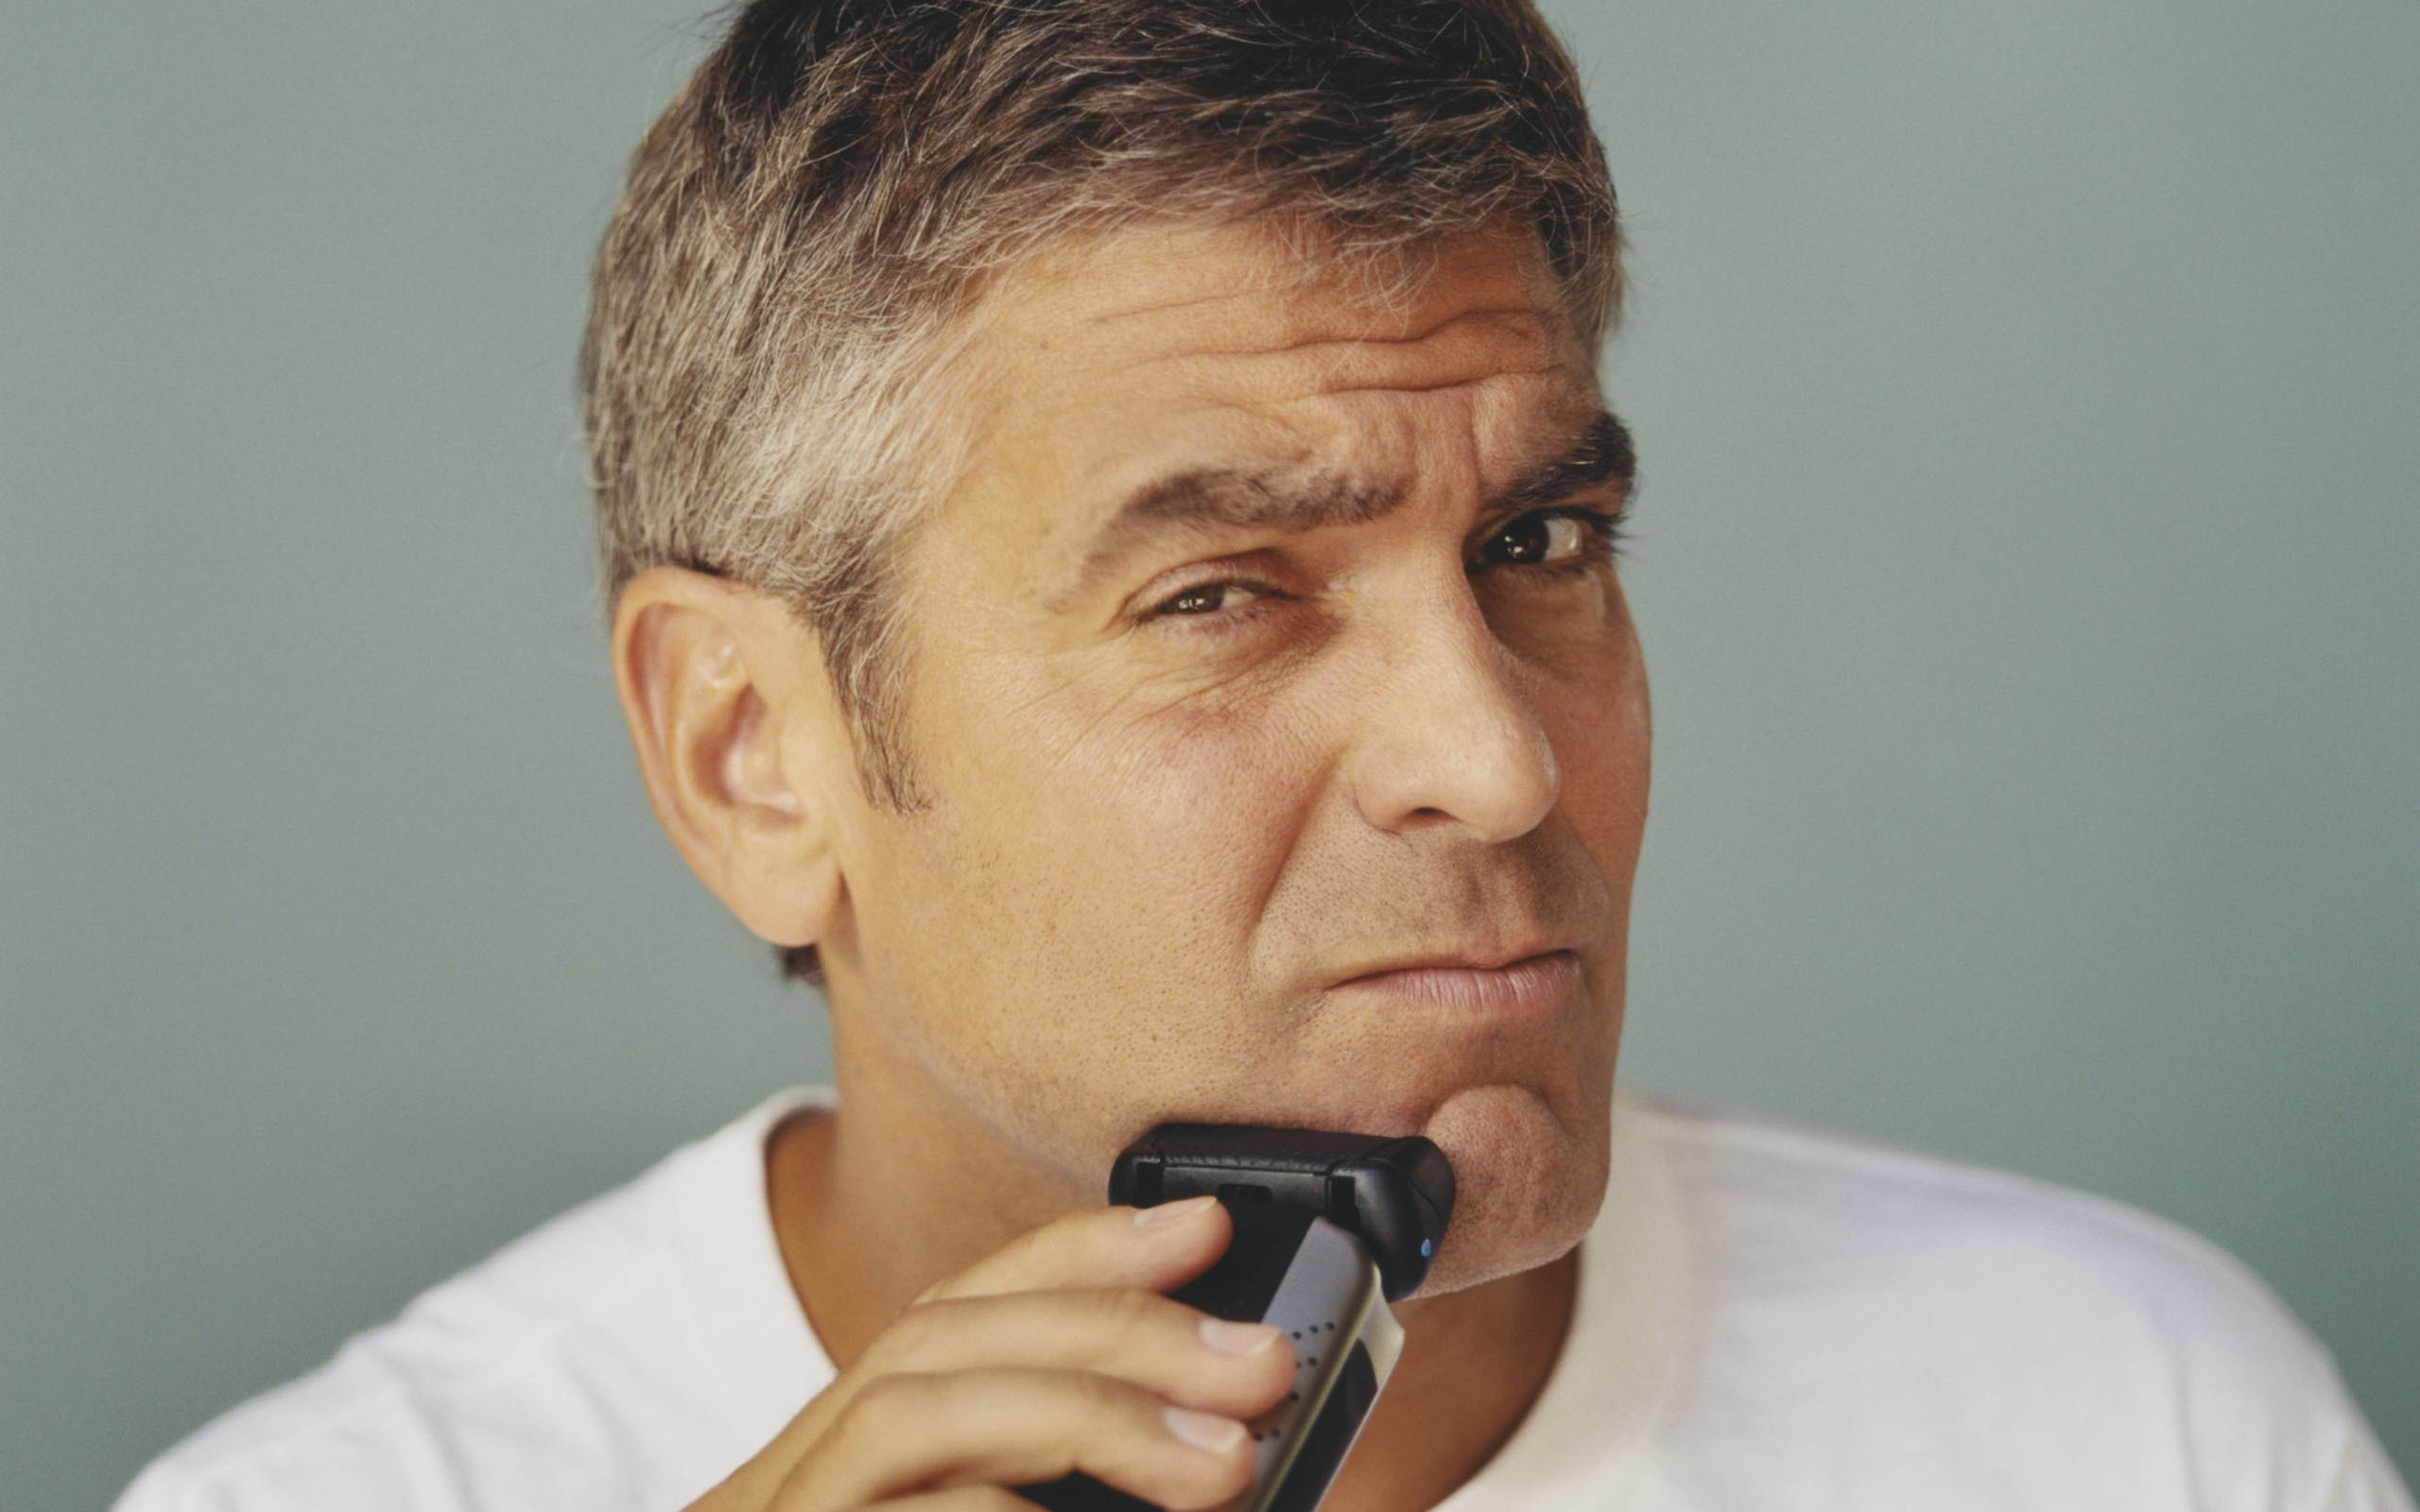 16 HD George Clooney Wallpapers 2560x1600